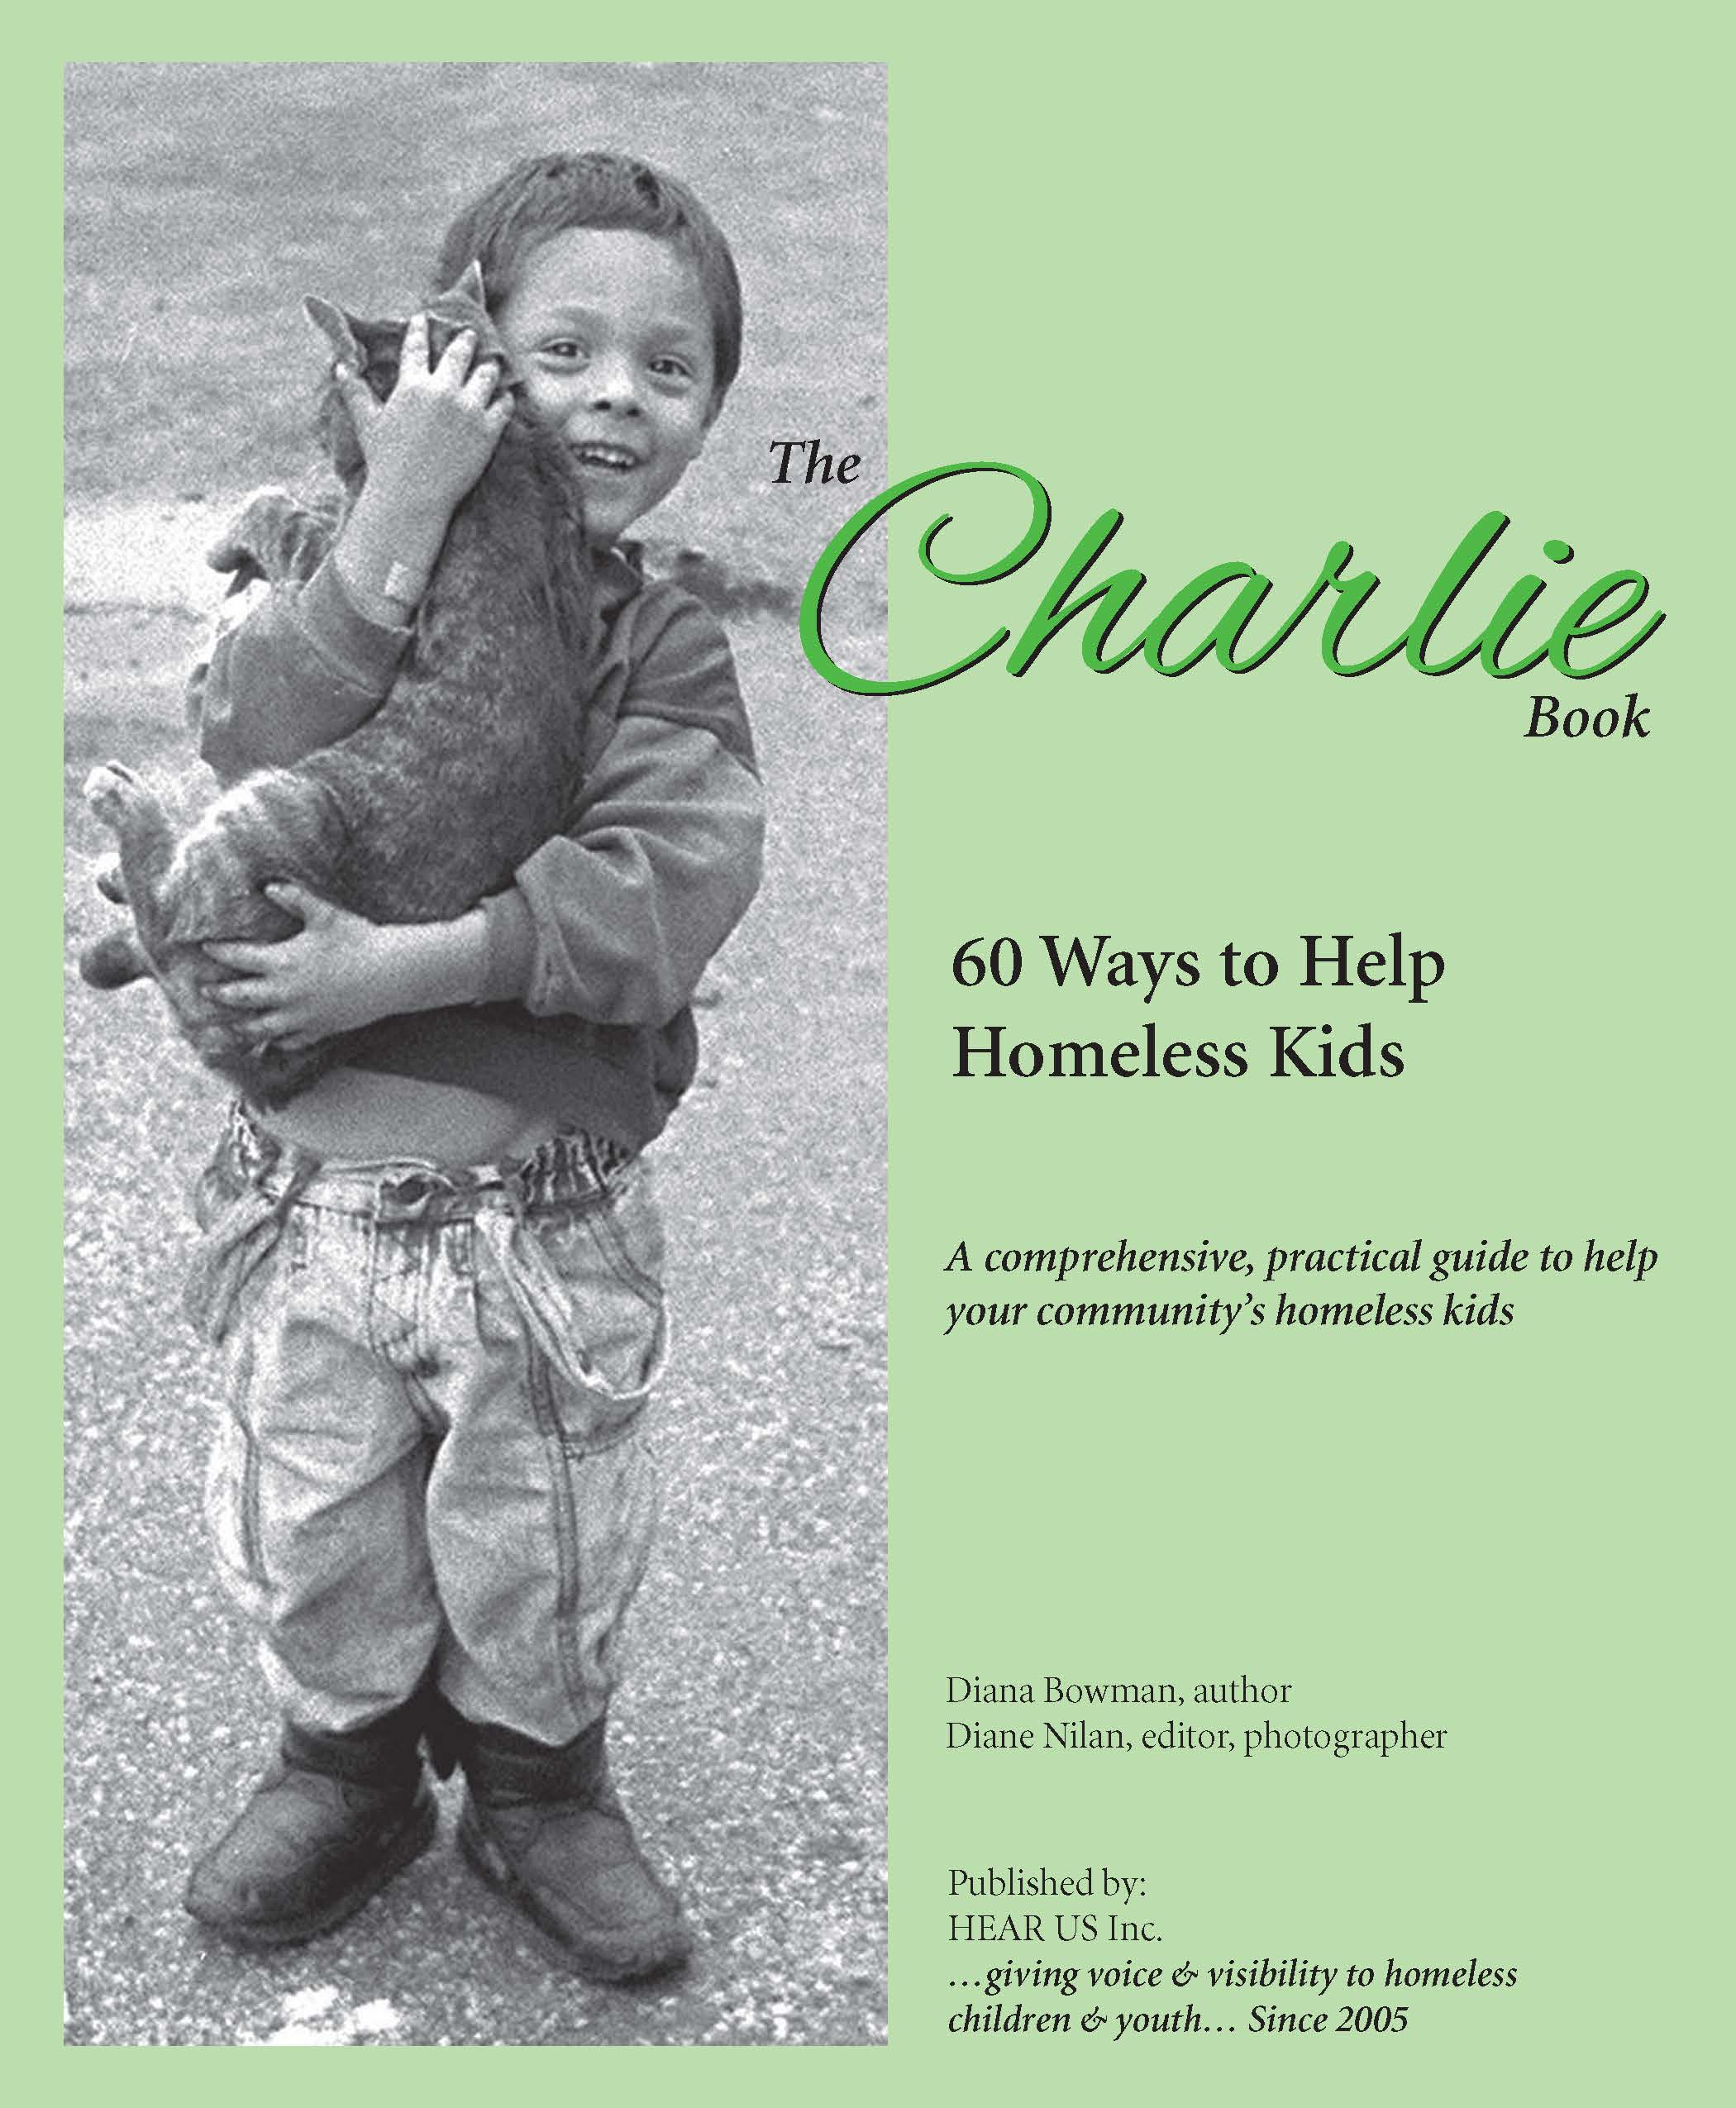 Charlie-book cover